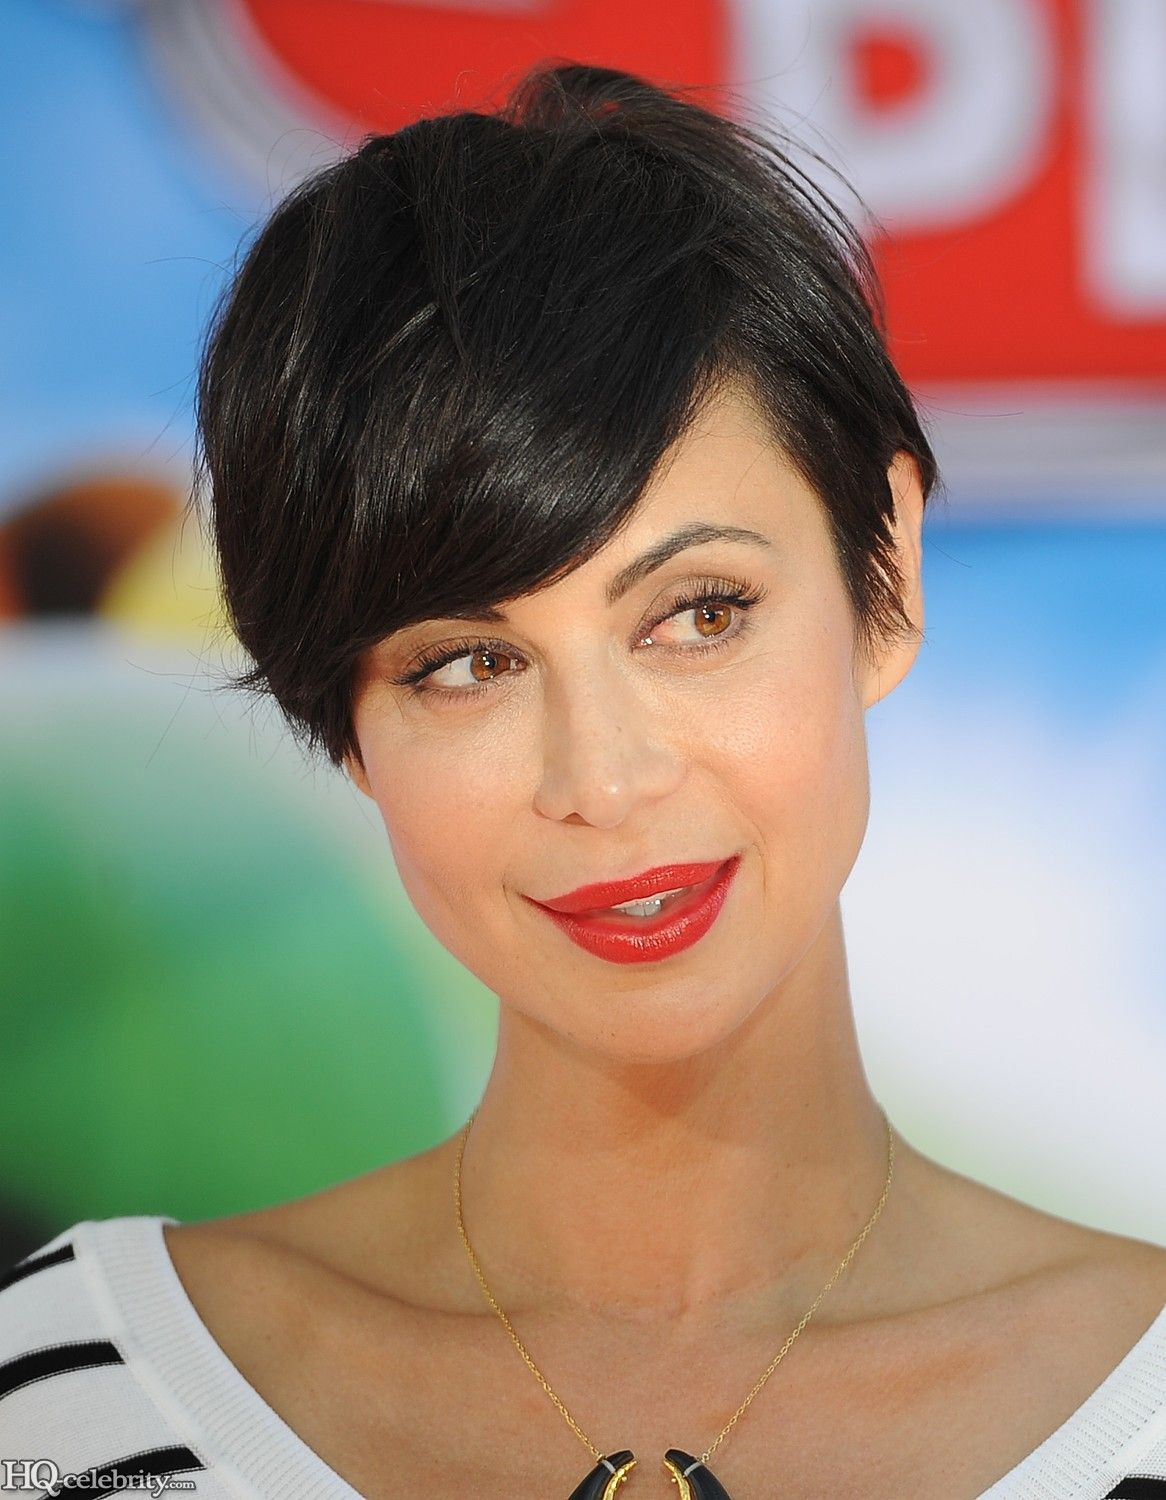 Catherine Bell Short Haircut : catherine, short, haircut, Catherine, Pixie., Could, Short, Bell,, Styles,, Styles